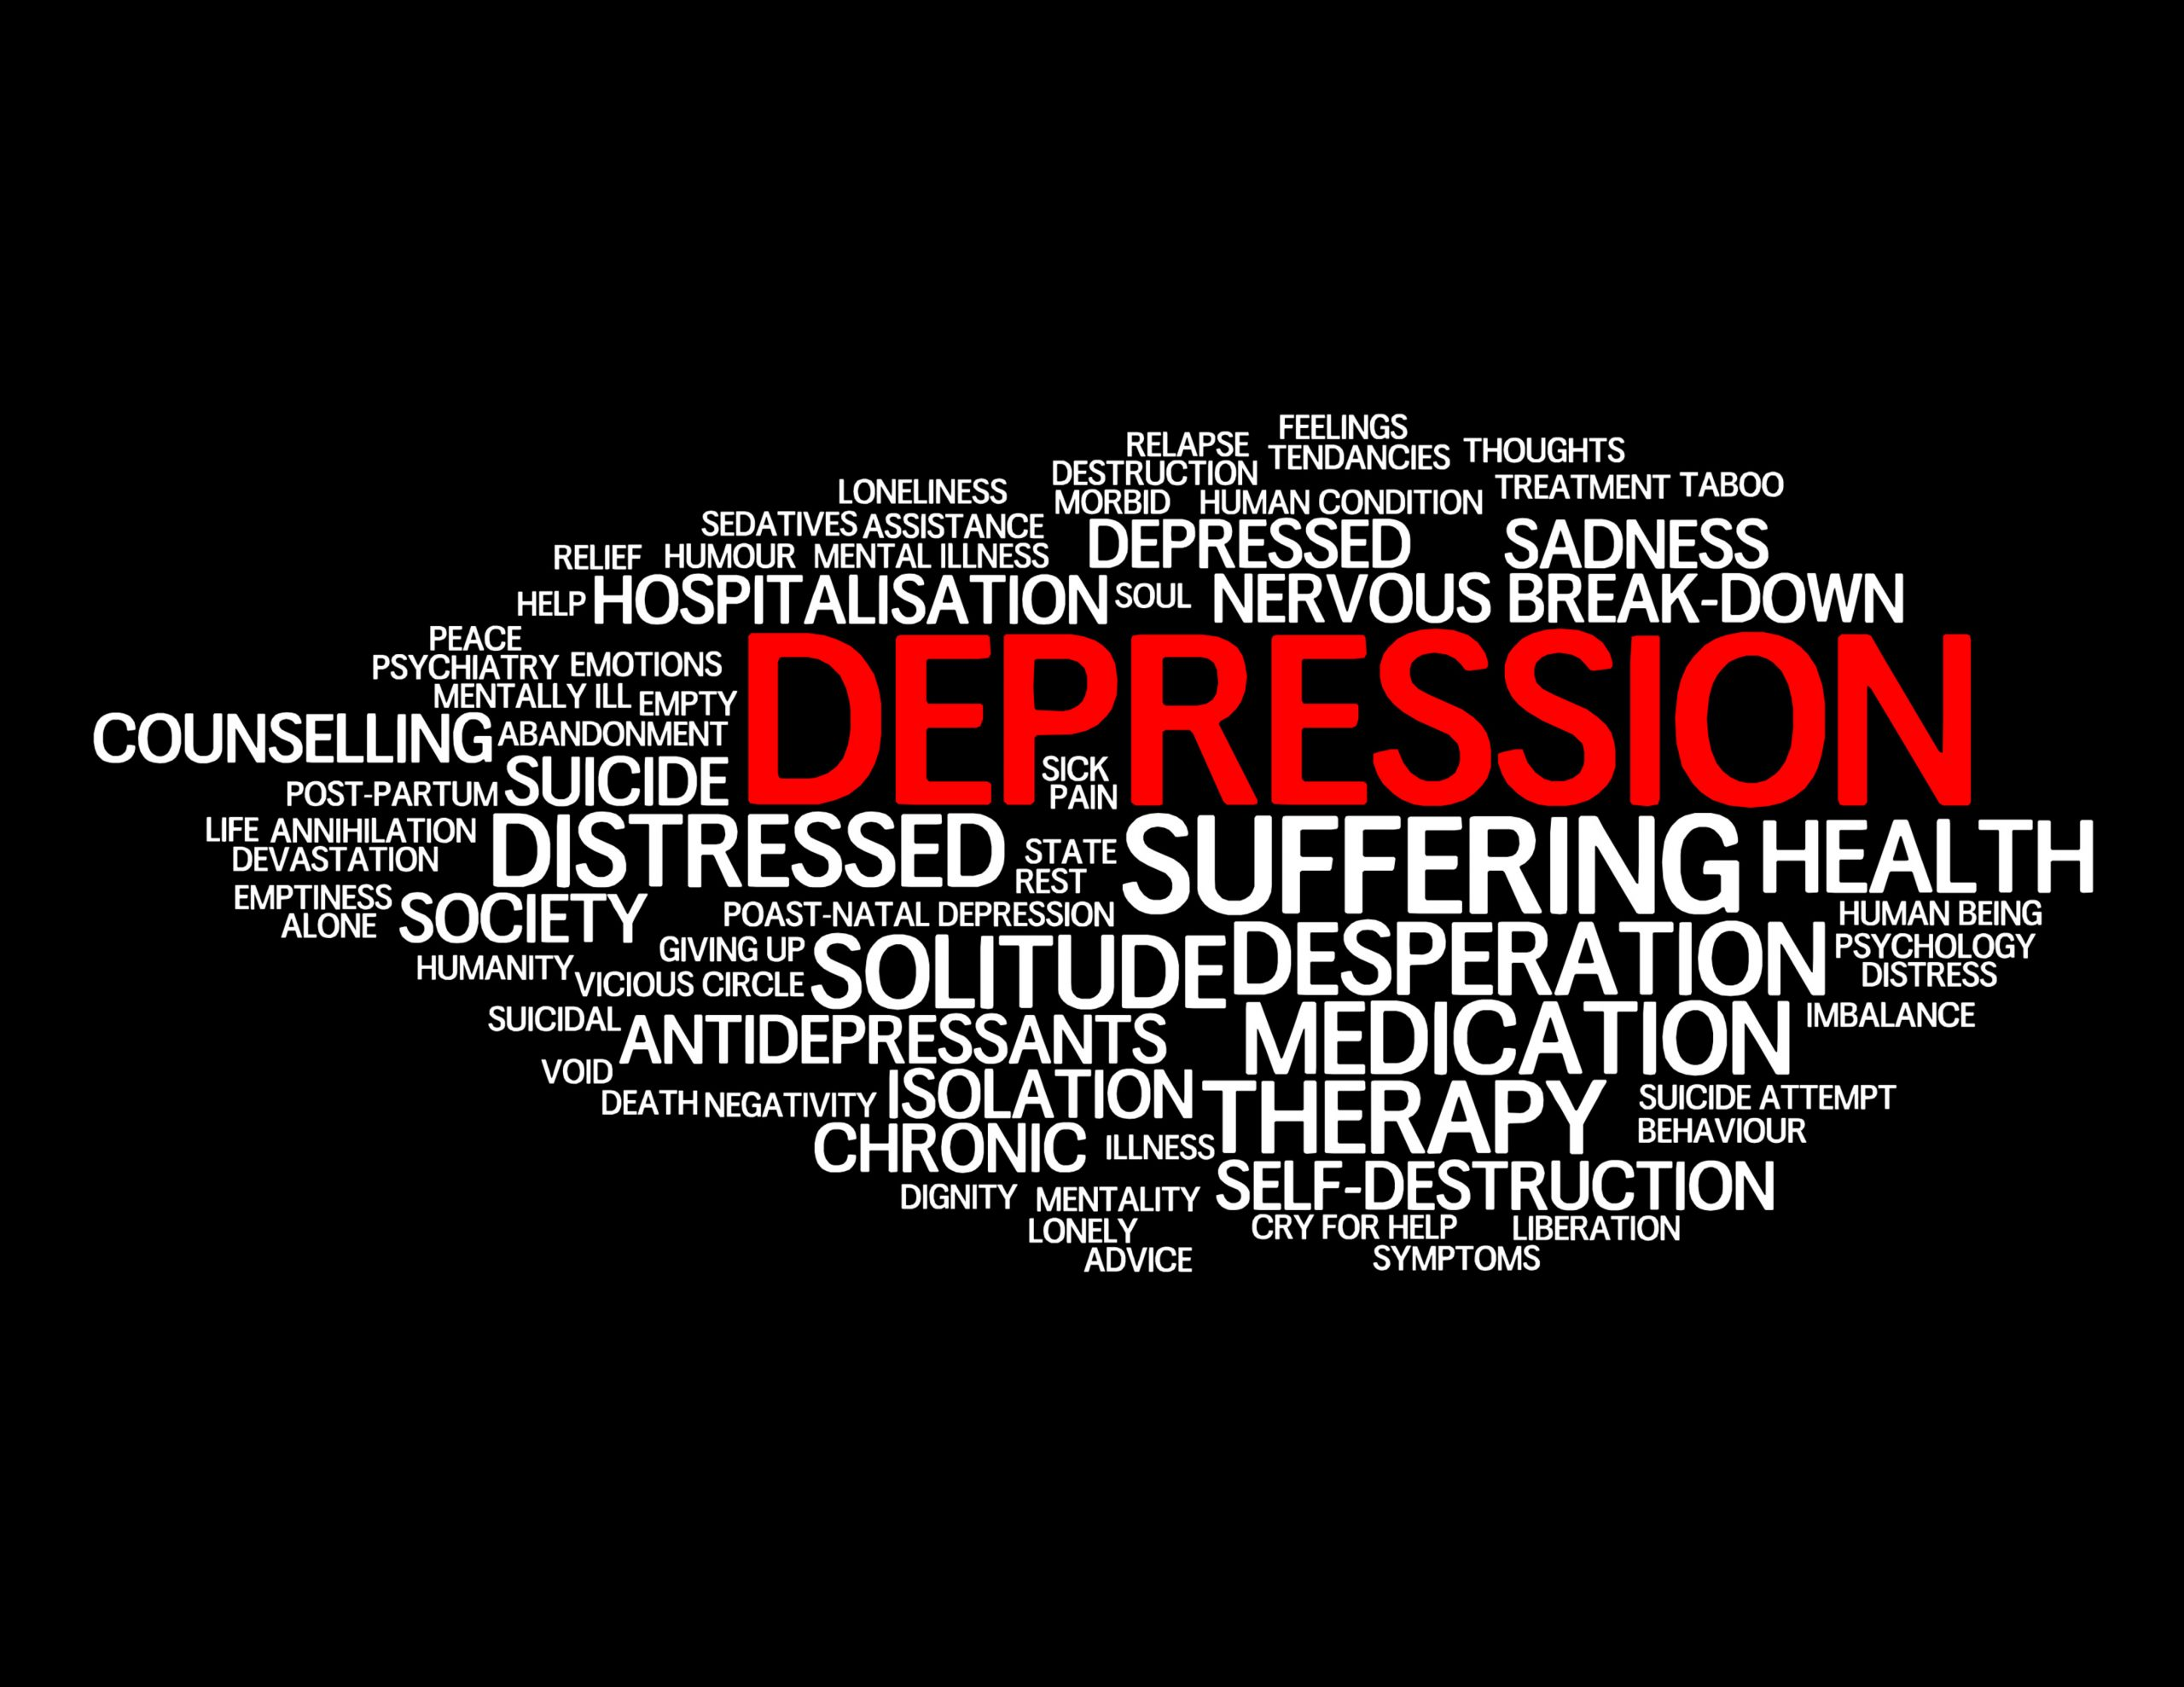 Depression: Causes, Types, Symptoms, Effects and Treatments